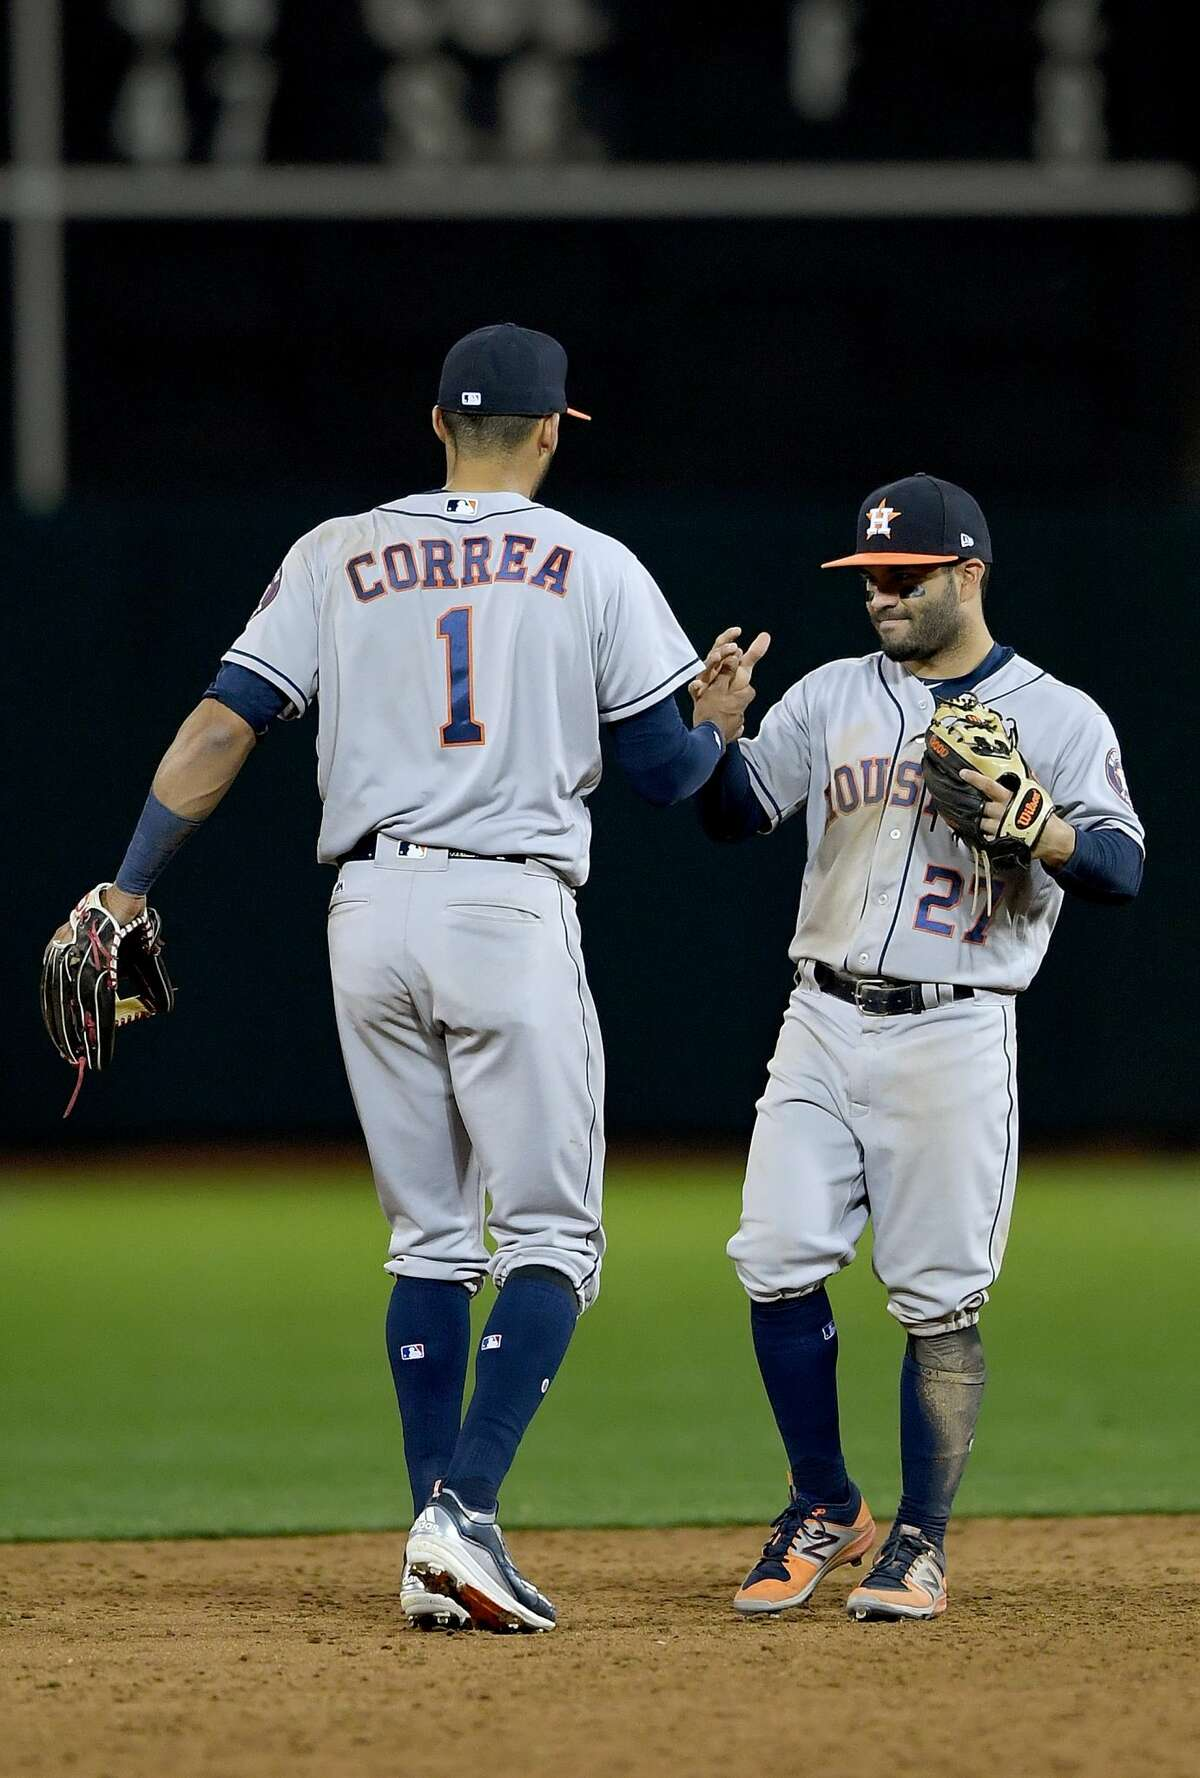 OAKLAND, CA - APRIL 14: Carlos Correa #1 and Jose Altuve #27 of the Houston Astros celebrates defeating the Oakland Athletics 7-2 at Oakland Alameda Coliseum on April 14, 2017 in Oakland, California. (Photo by Thearon W. Henderson/Getty Images)